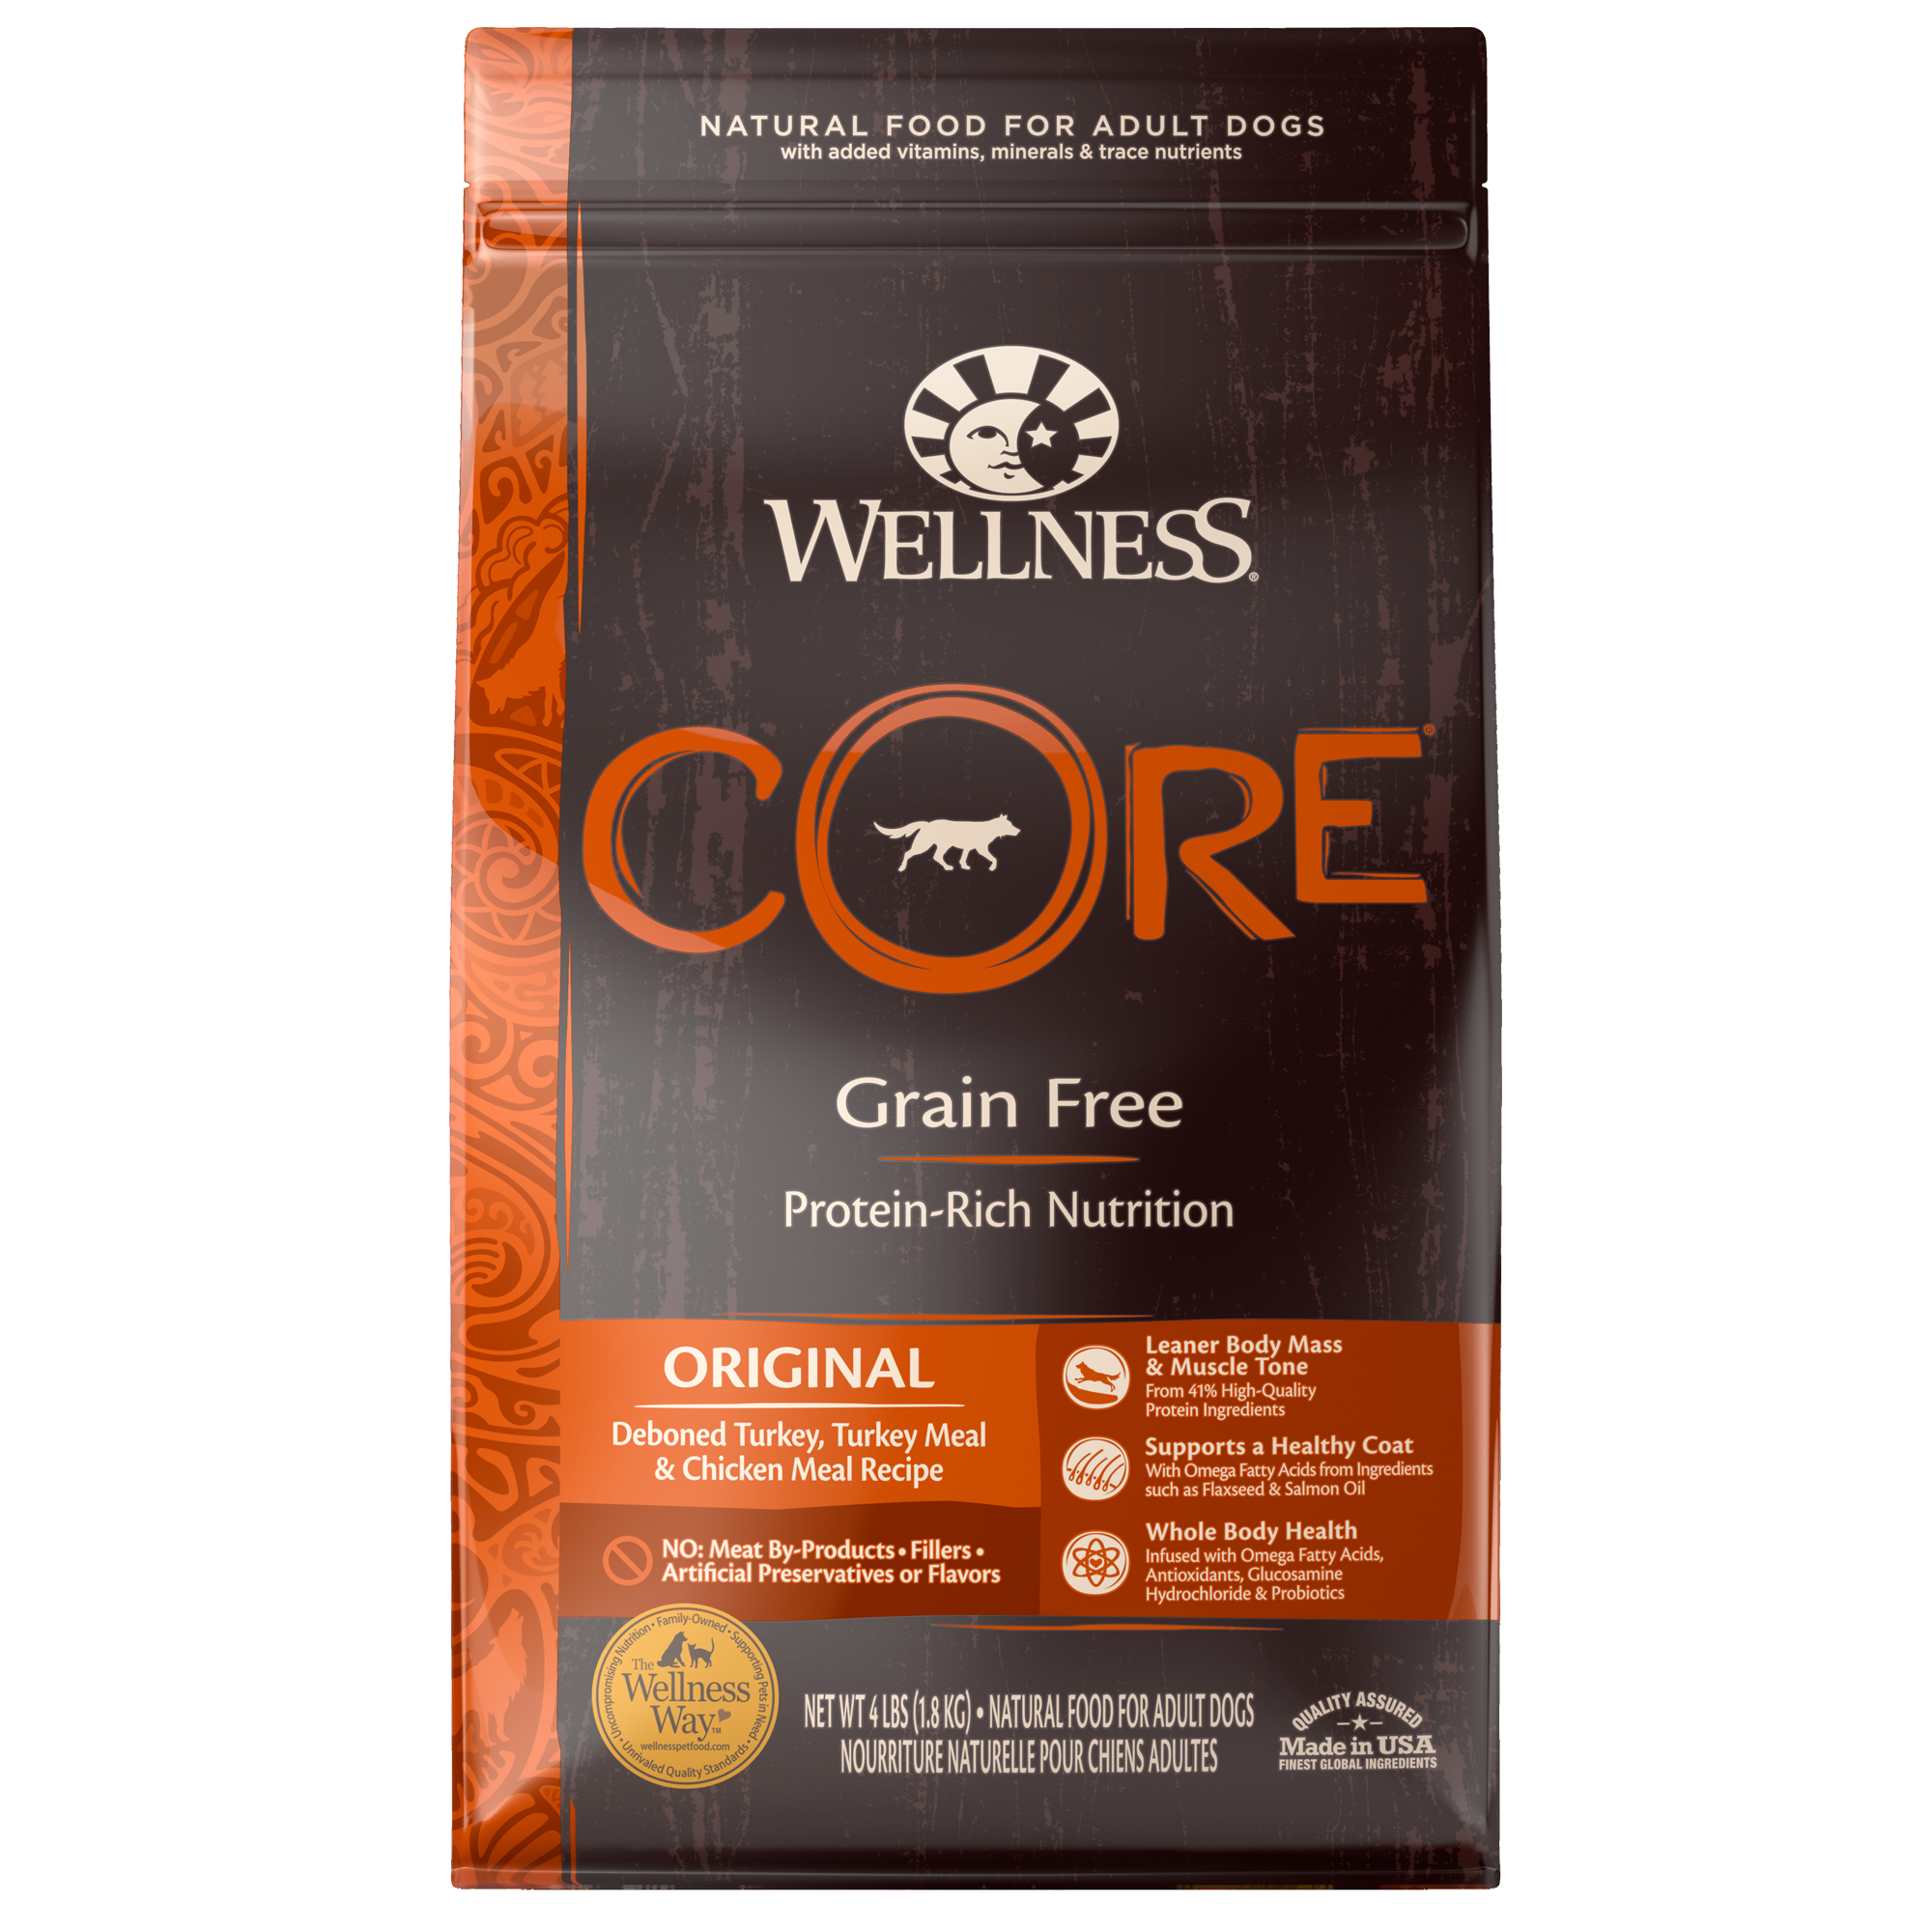 Wellness Core Original Dry Dog Food Grain Free